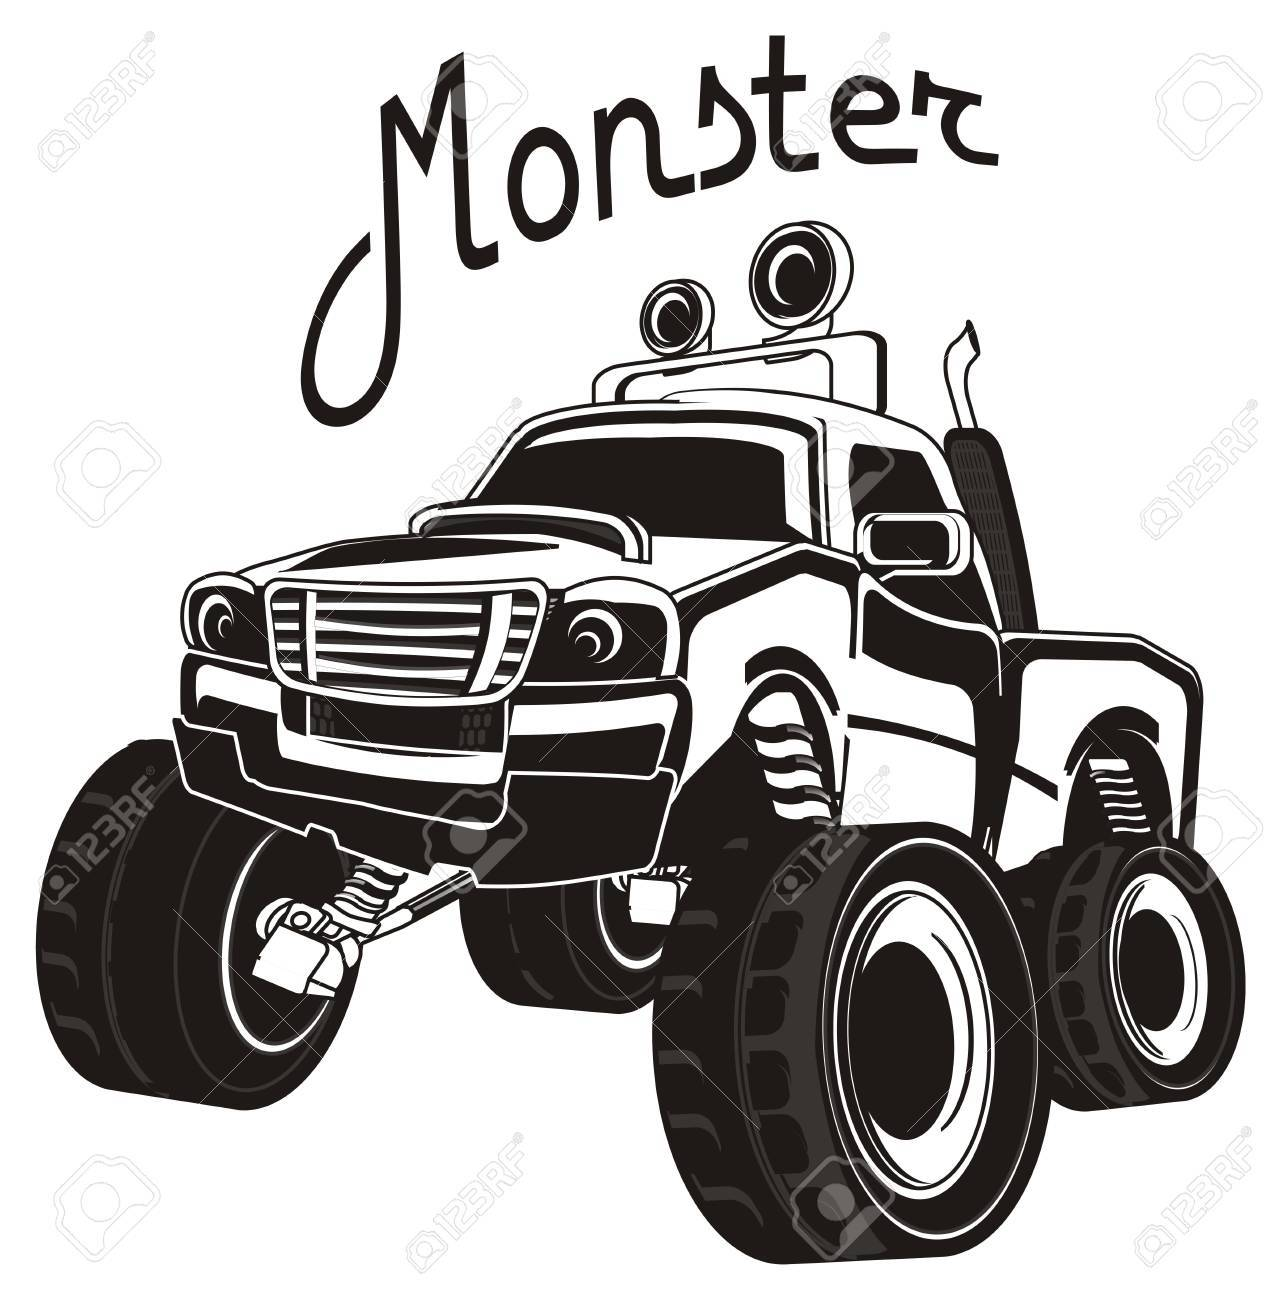 Black And White Monster Truck And His Name Stock Photo Picture And Royalty Free Image Image 86755355